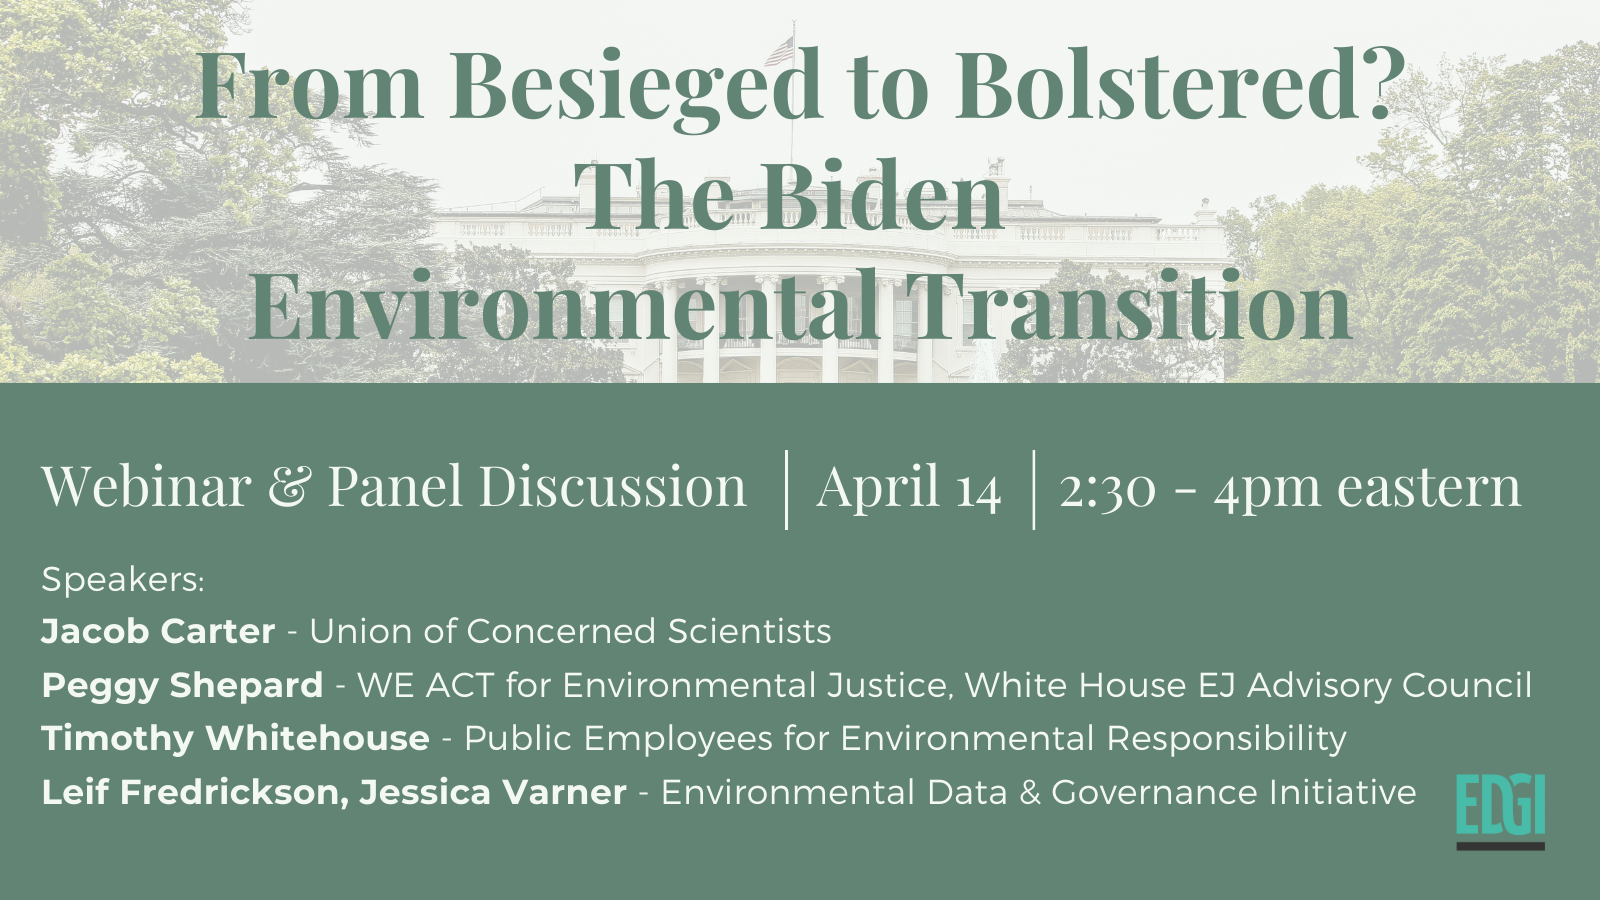 Upcoming Webinar: From Besieged to Bolstered? The Biden Environmental Transition